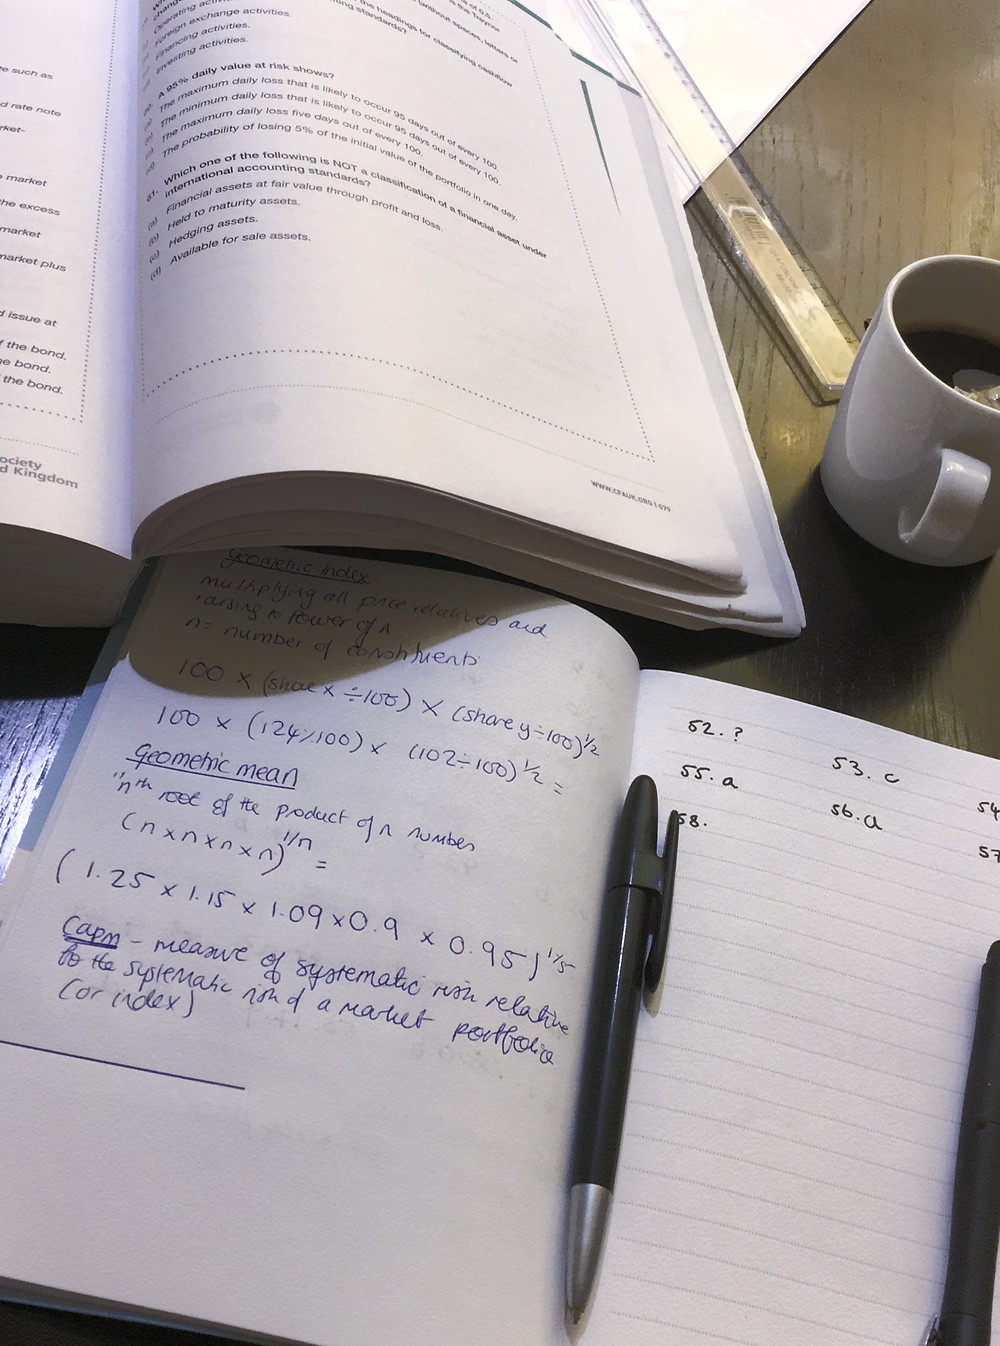 Study materials for investment management certificate